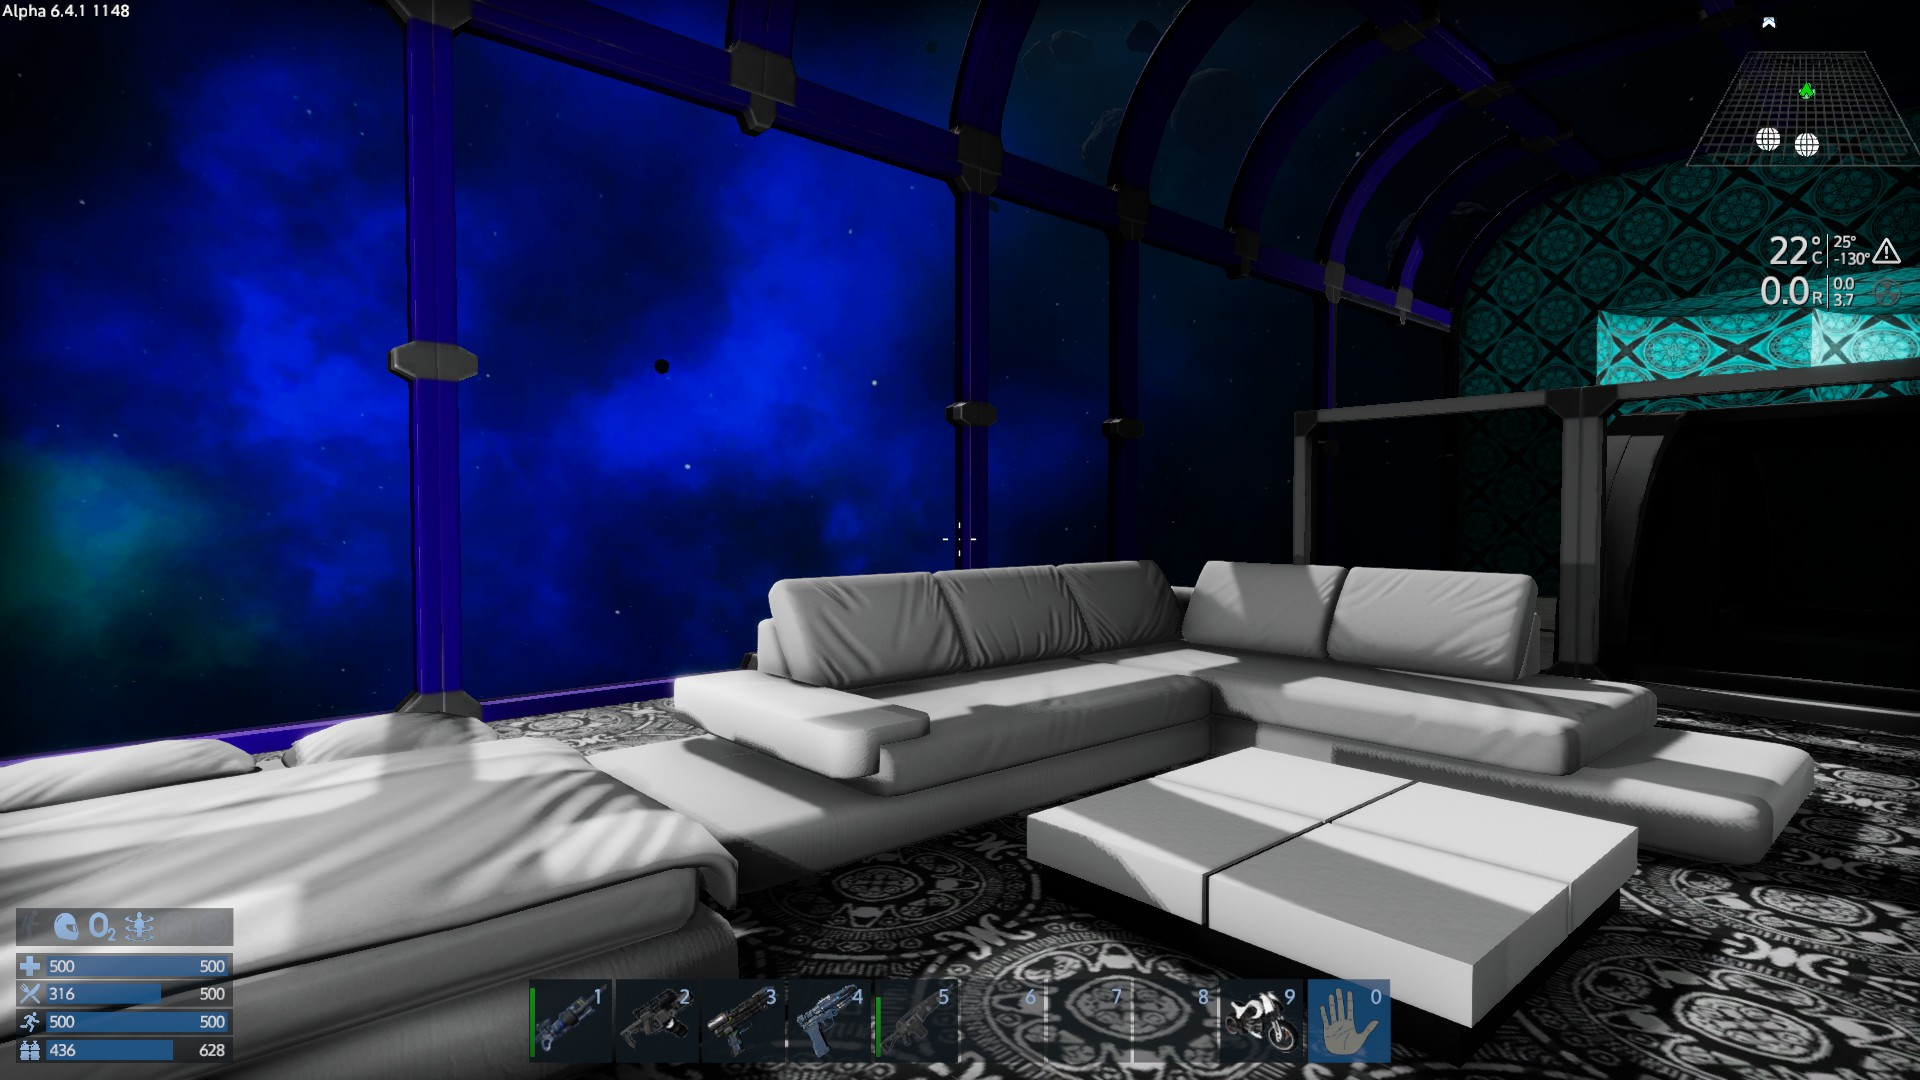 EmpyrionShipLoungeSpace